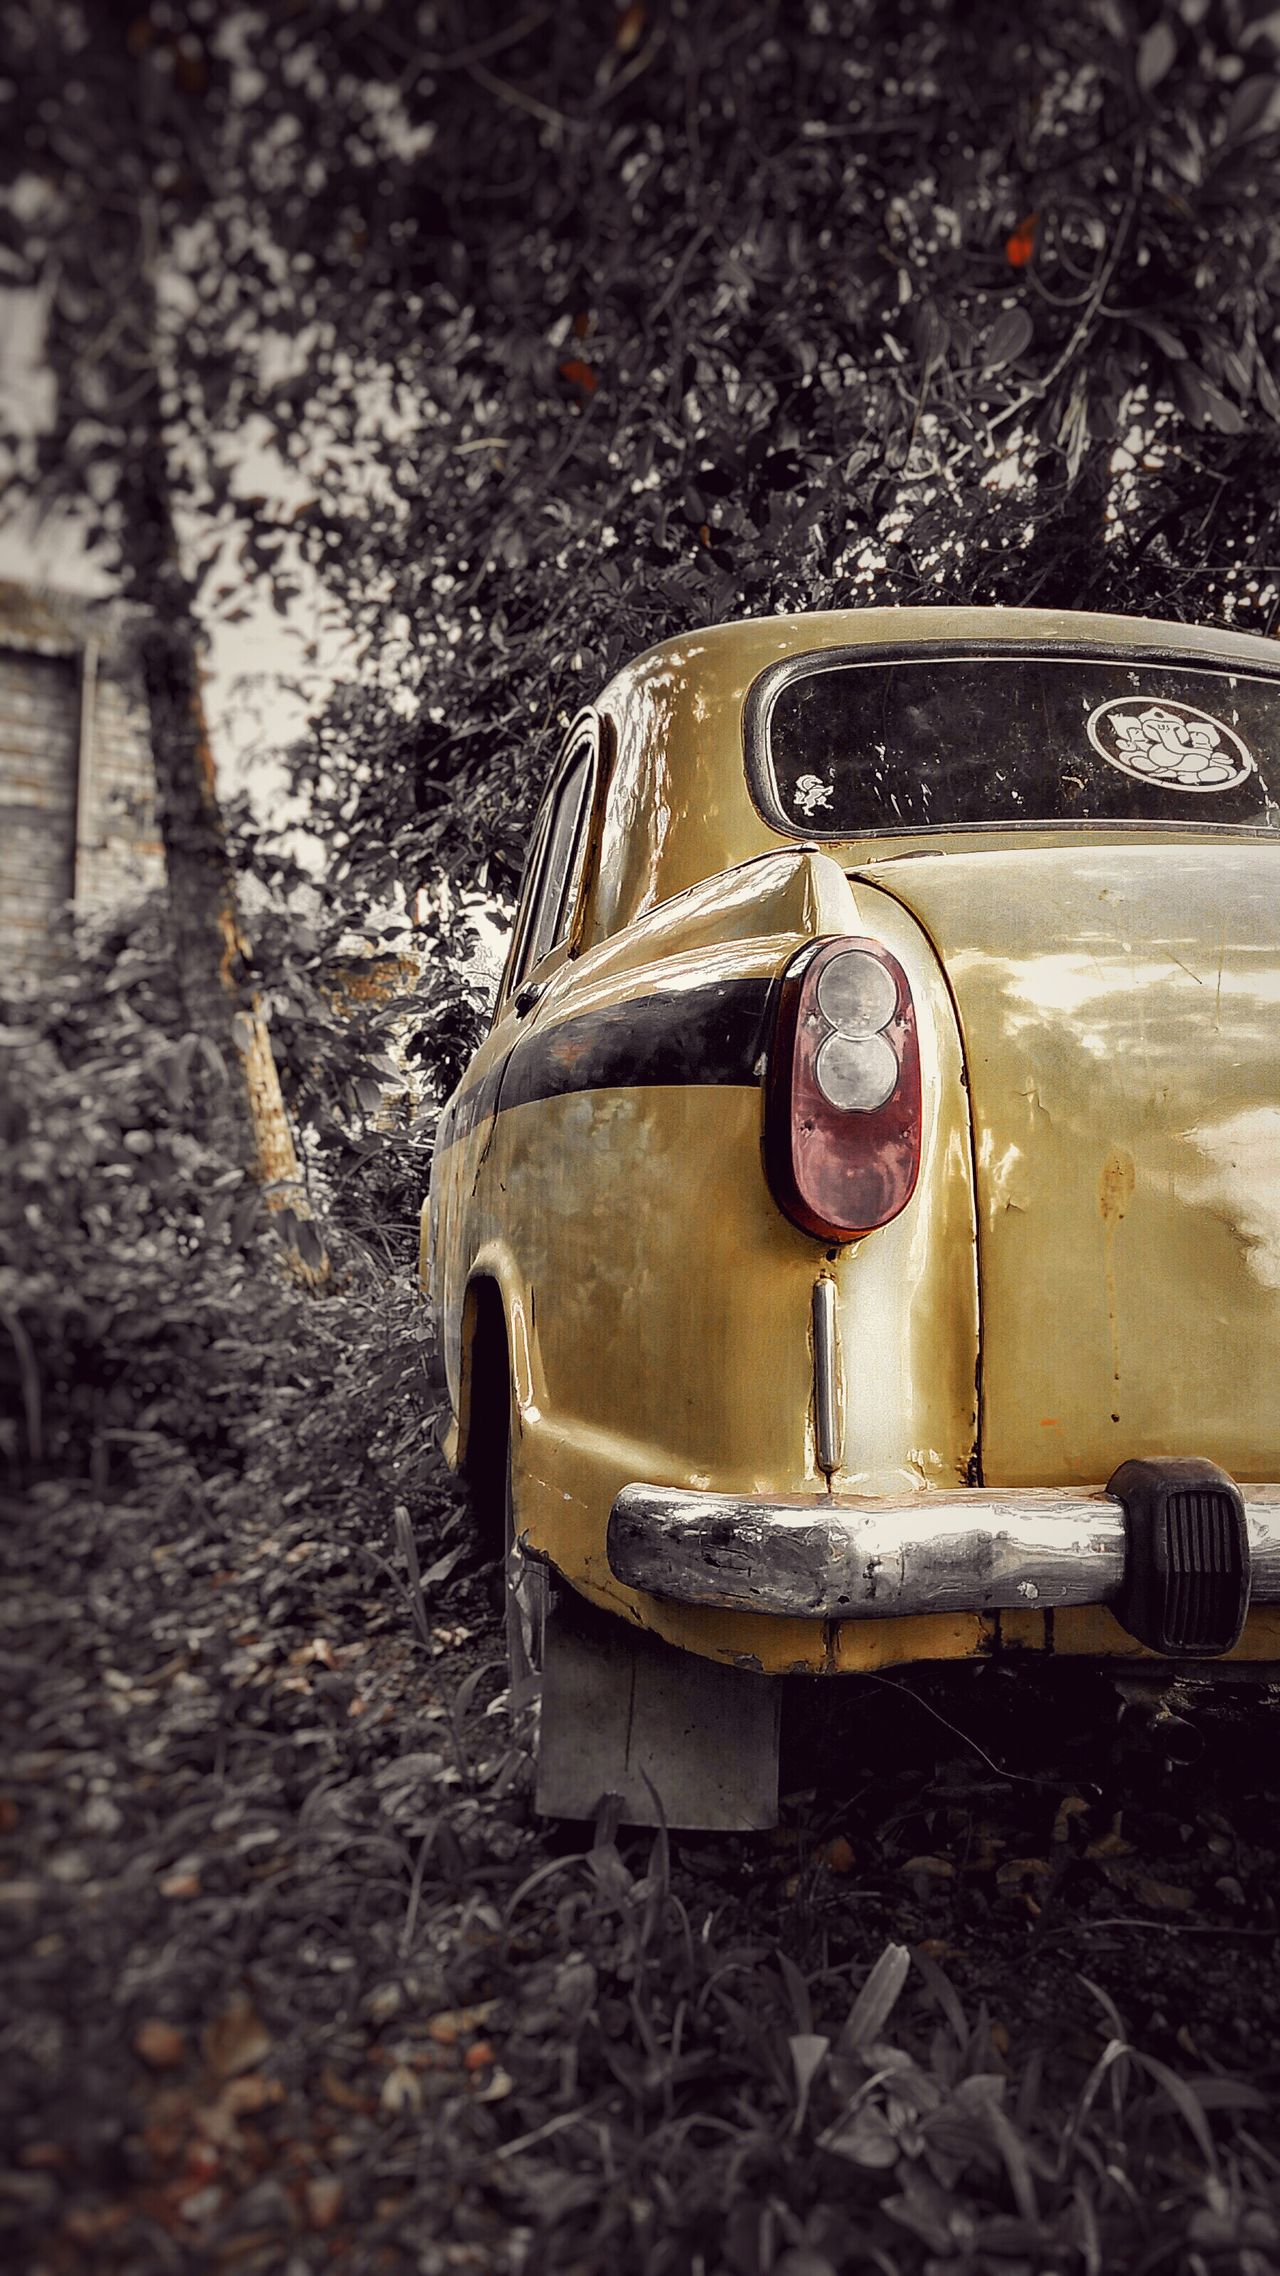 Car Transportation Abandoned Land Vehicle Outdoors Old-fashioned No People Day Close-up Photography Photo Of The Day Wallpaper 4K HDR IPhone Vintage Blackandwhite Old Car India Taxi Cab Kolkata Photo Graphy Photo Yellow Lieblingsteil Miles Away EyeEmNewHere The City Light Live For The Story